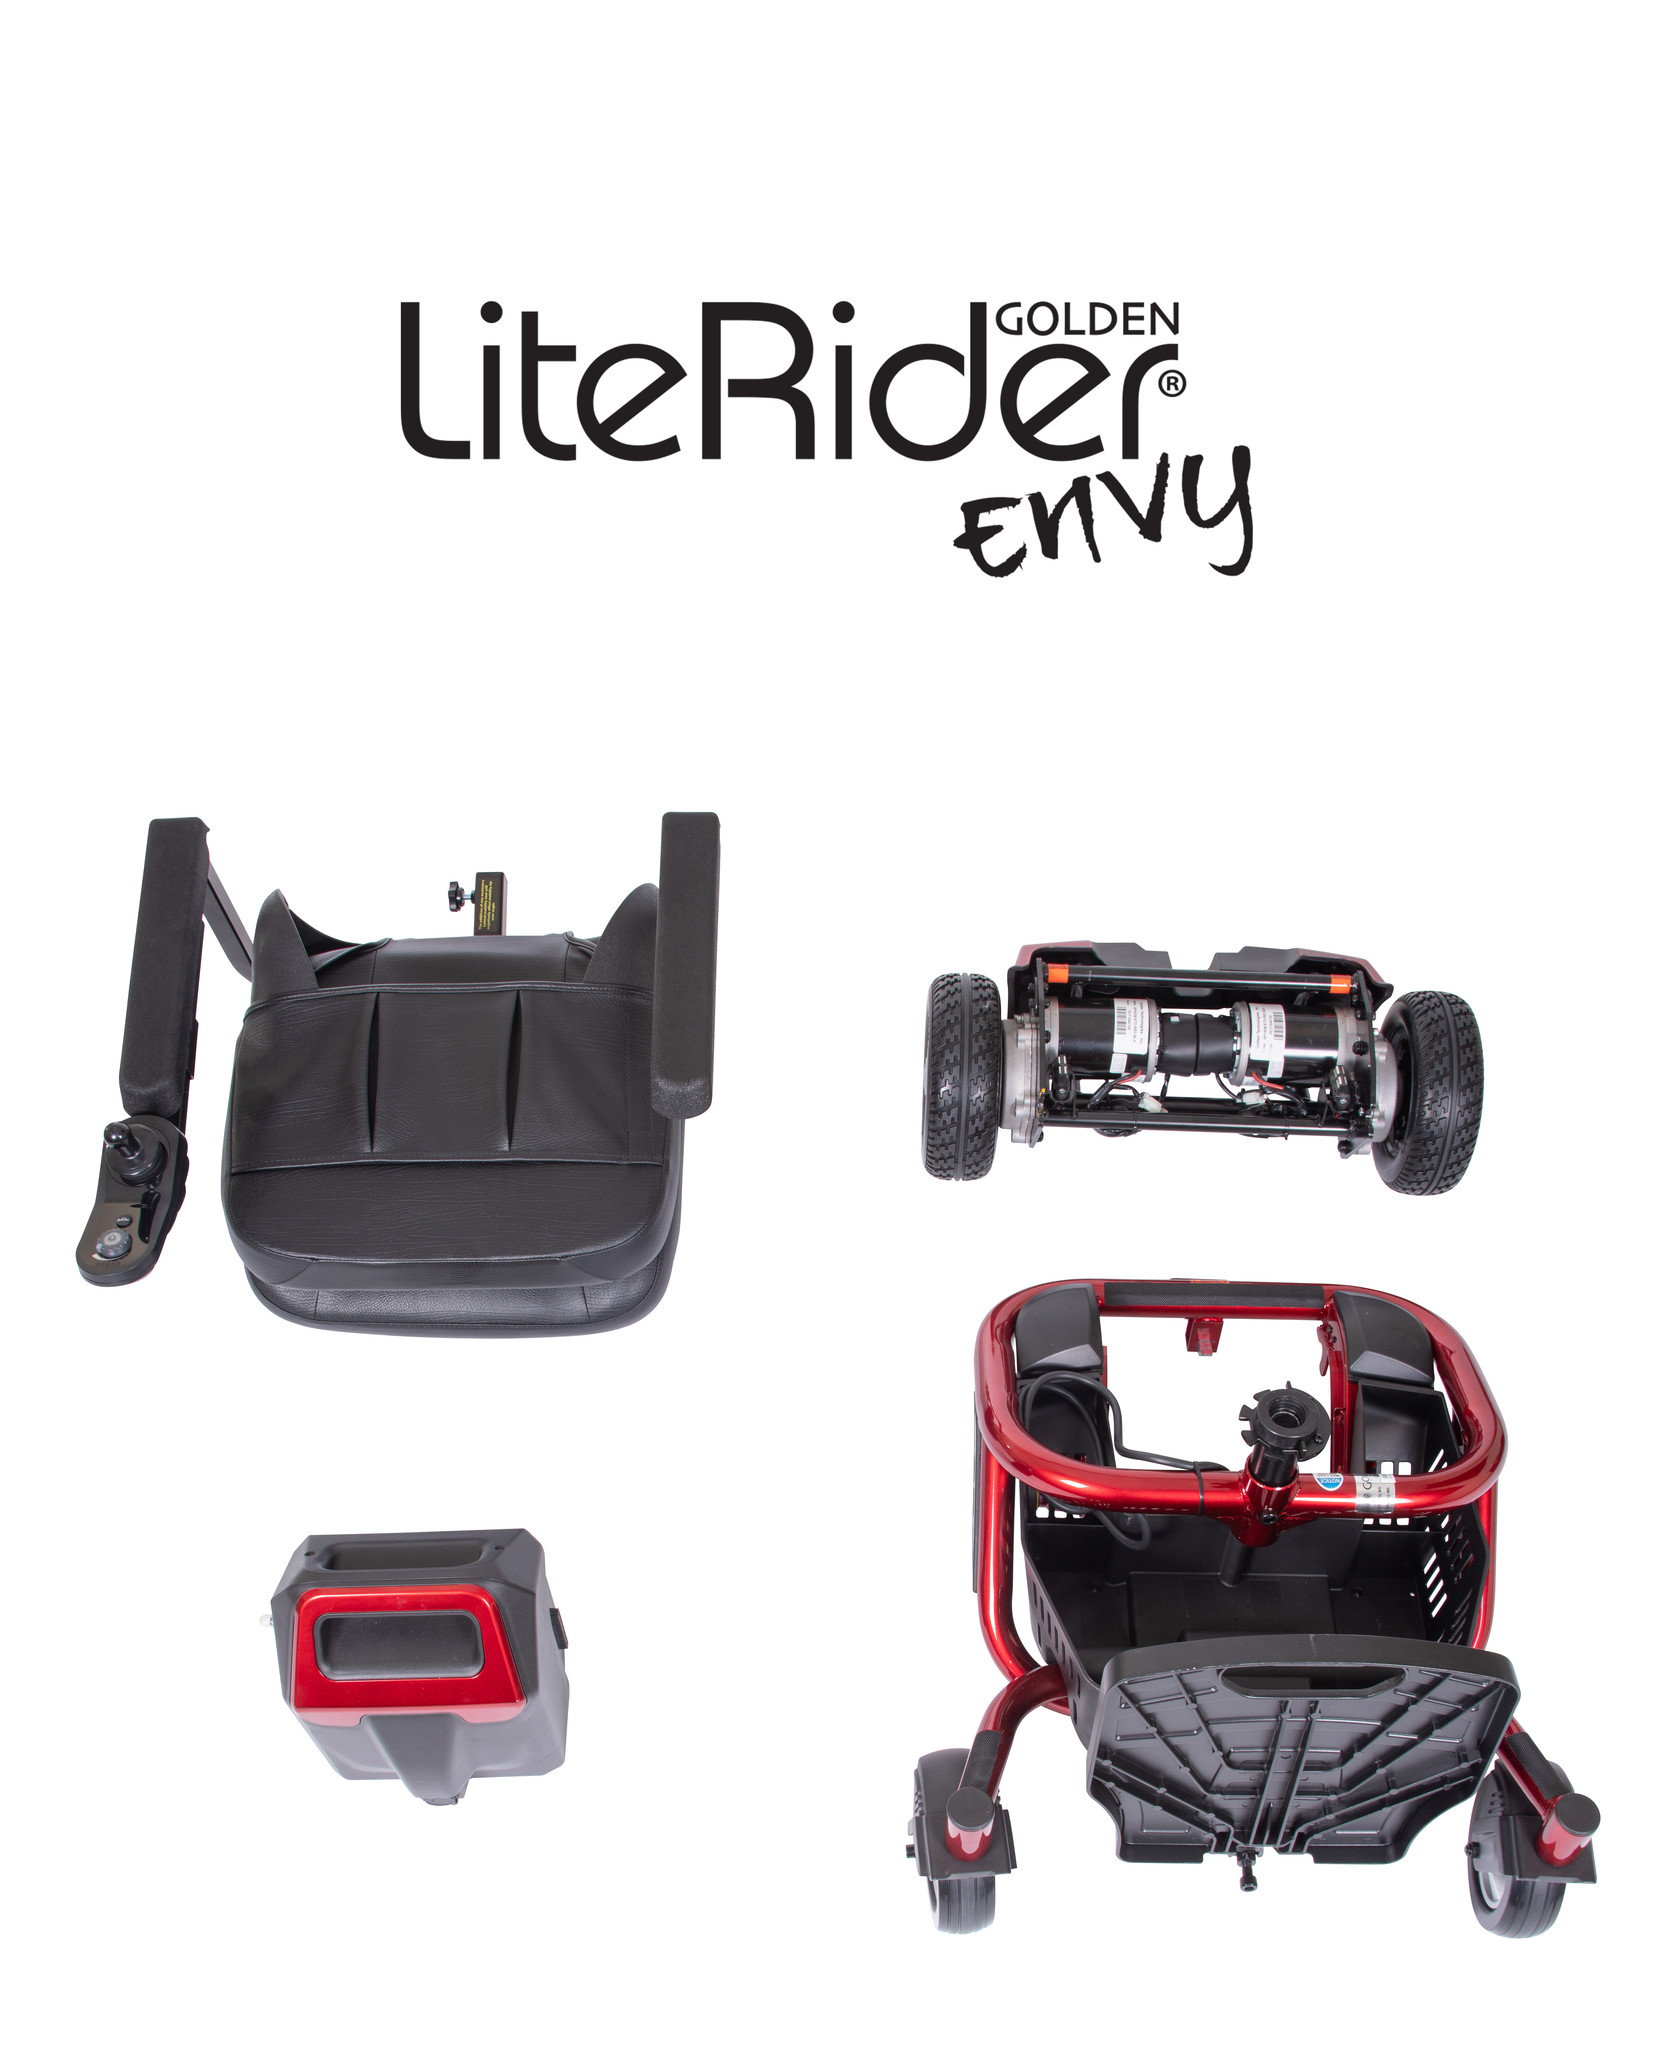 LiteRider Envy Portable Powerchair shown in disassembled pieces for portability